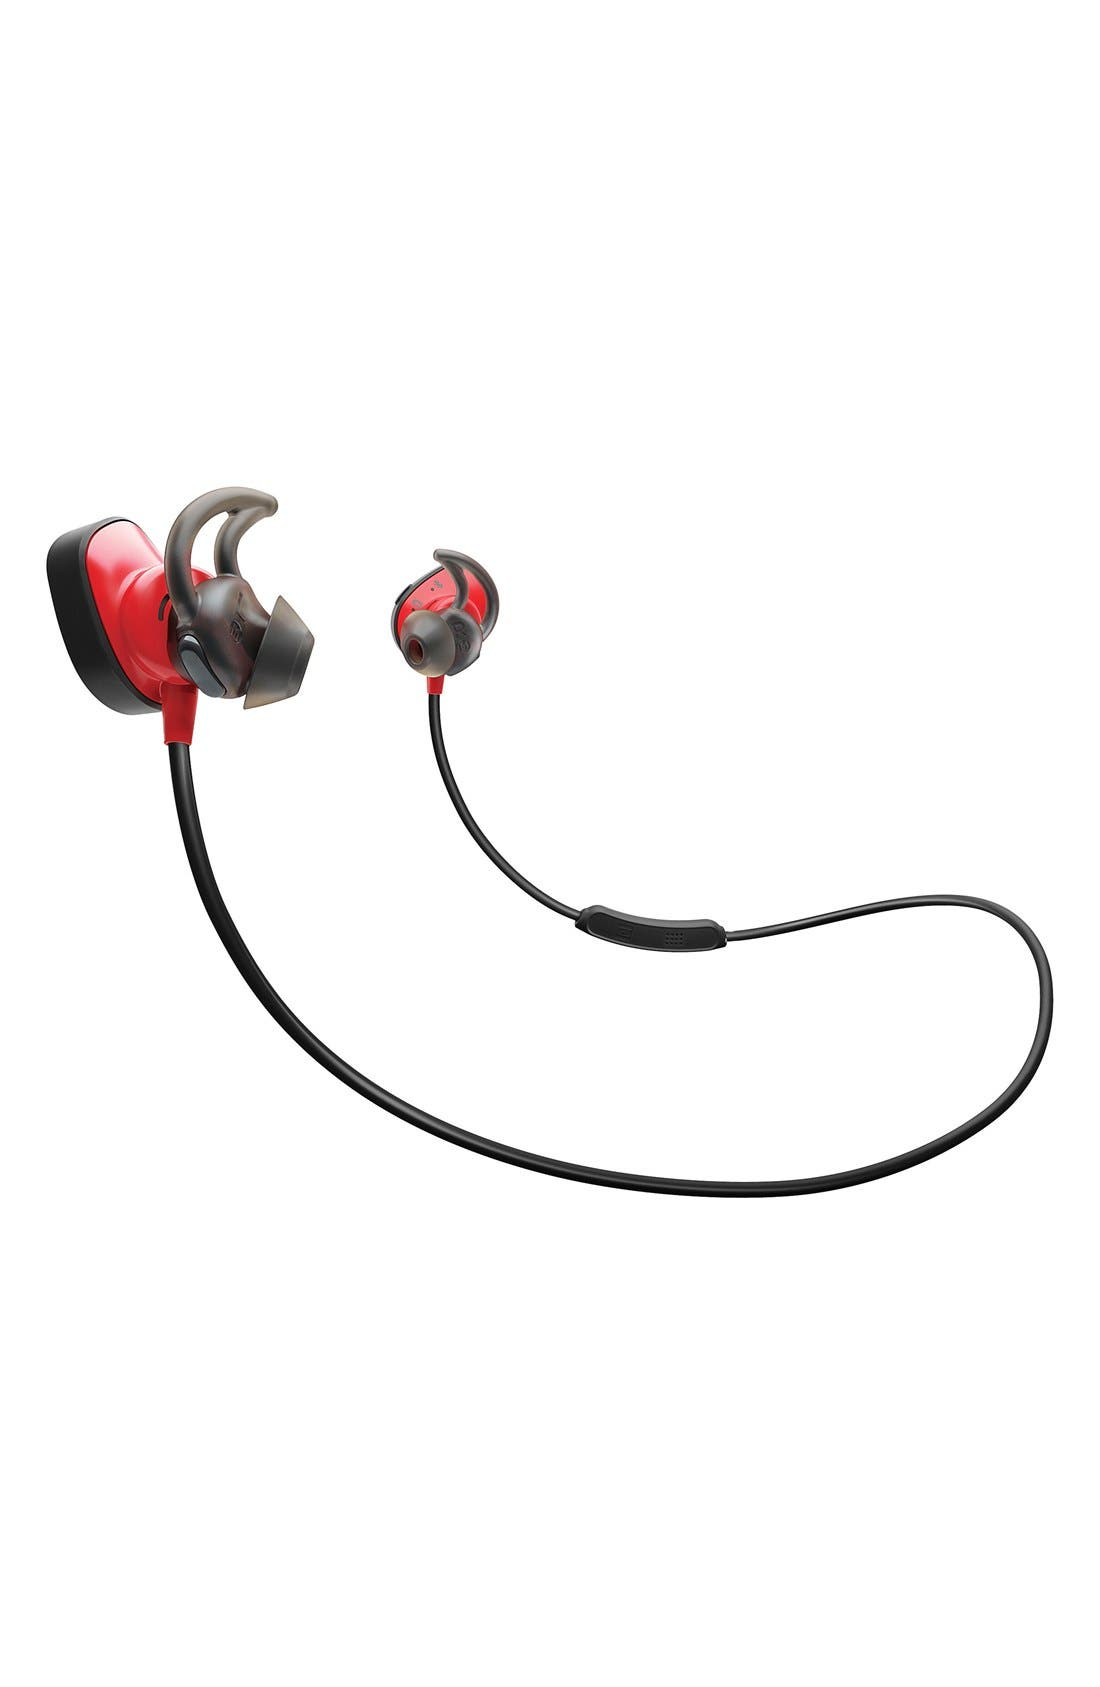 Bose® SoundSport® Pulse In-Ear Wireless Headphones